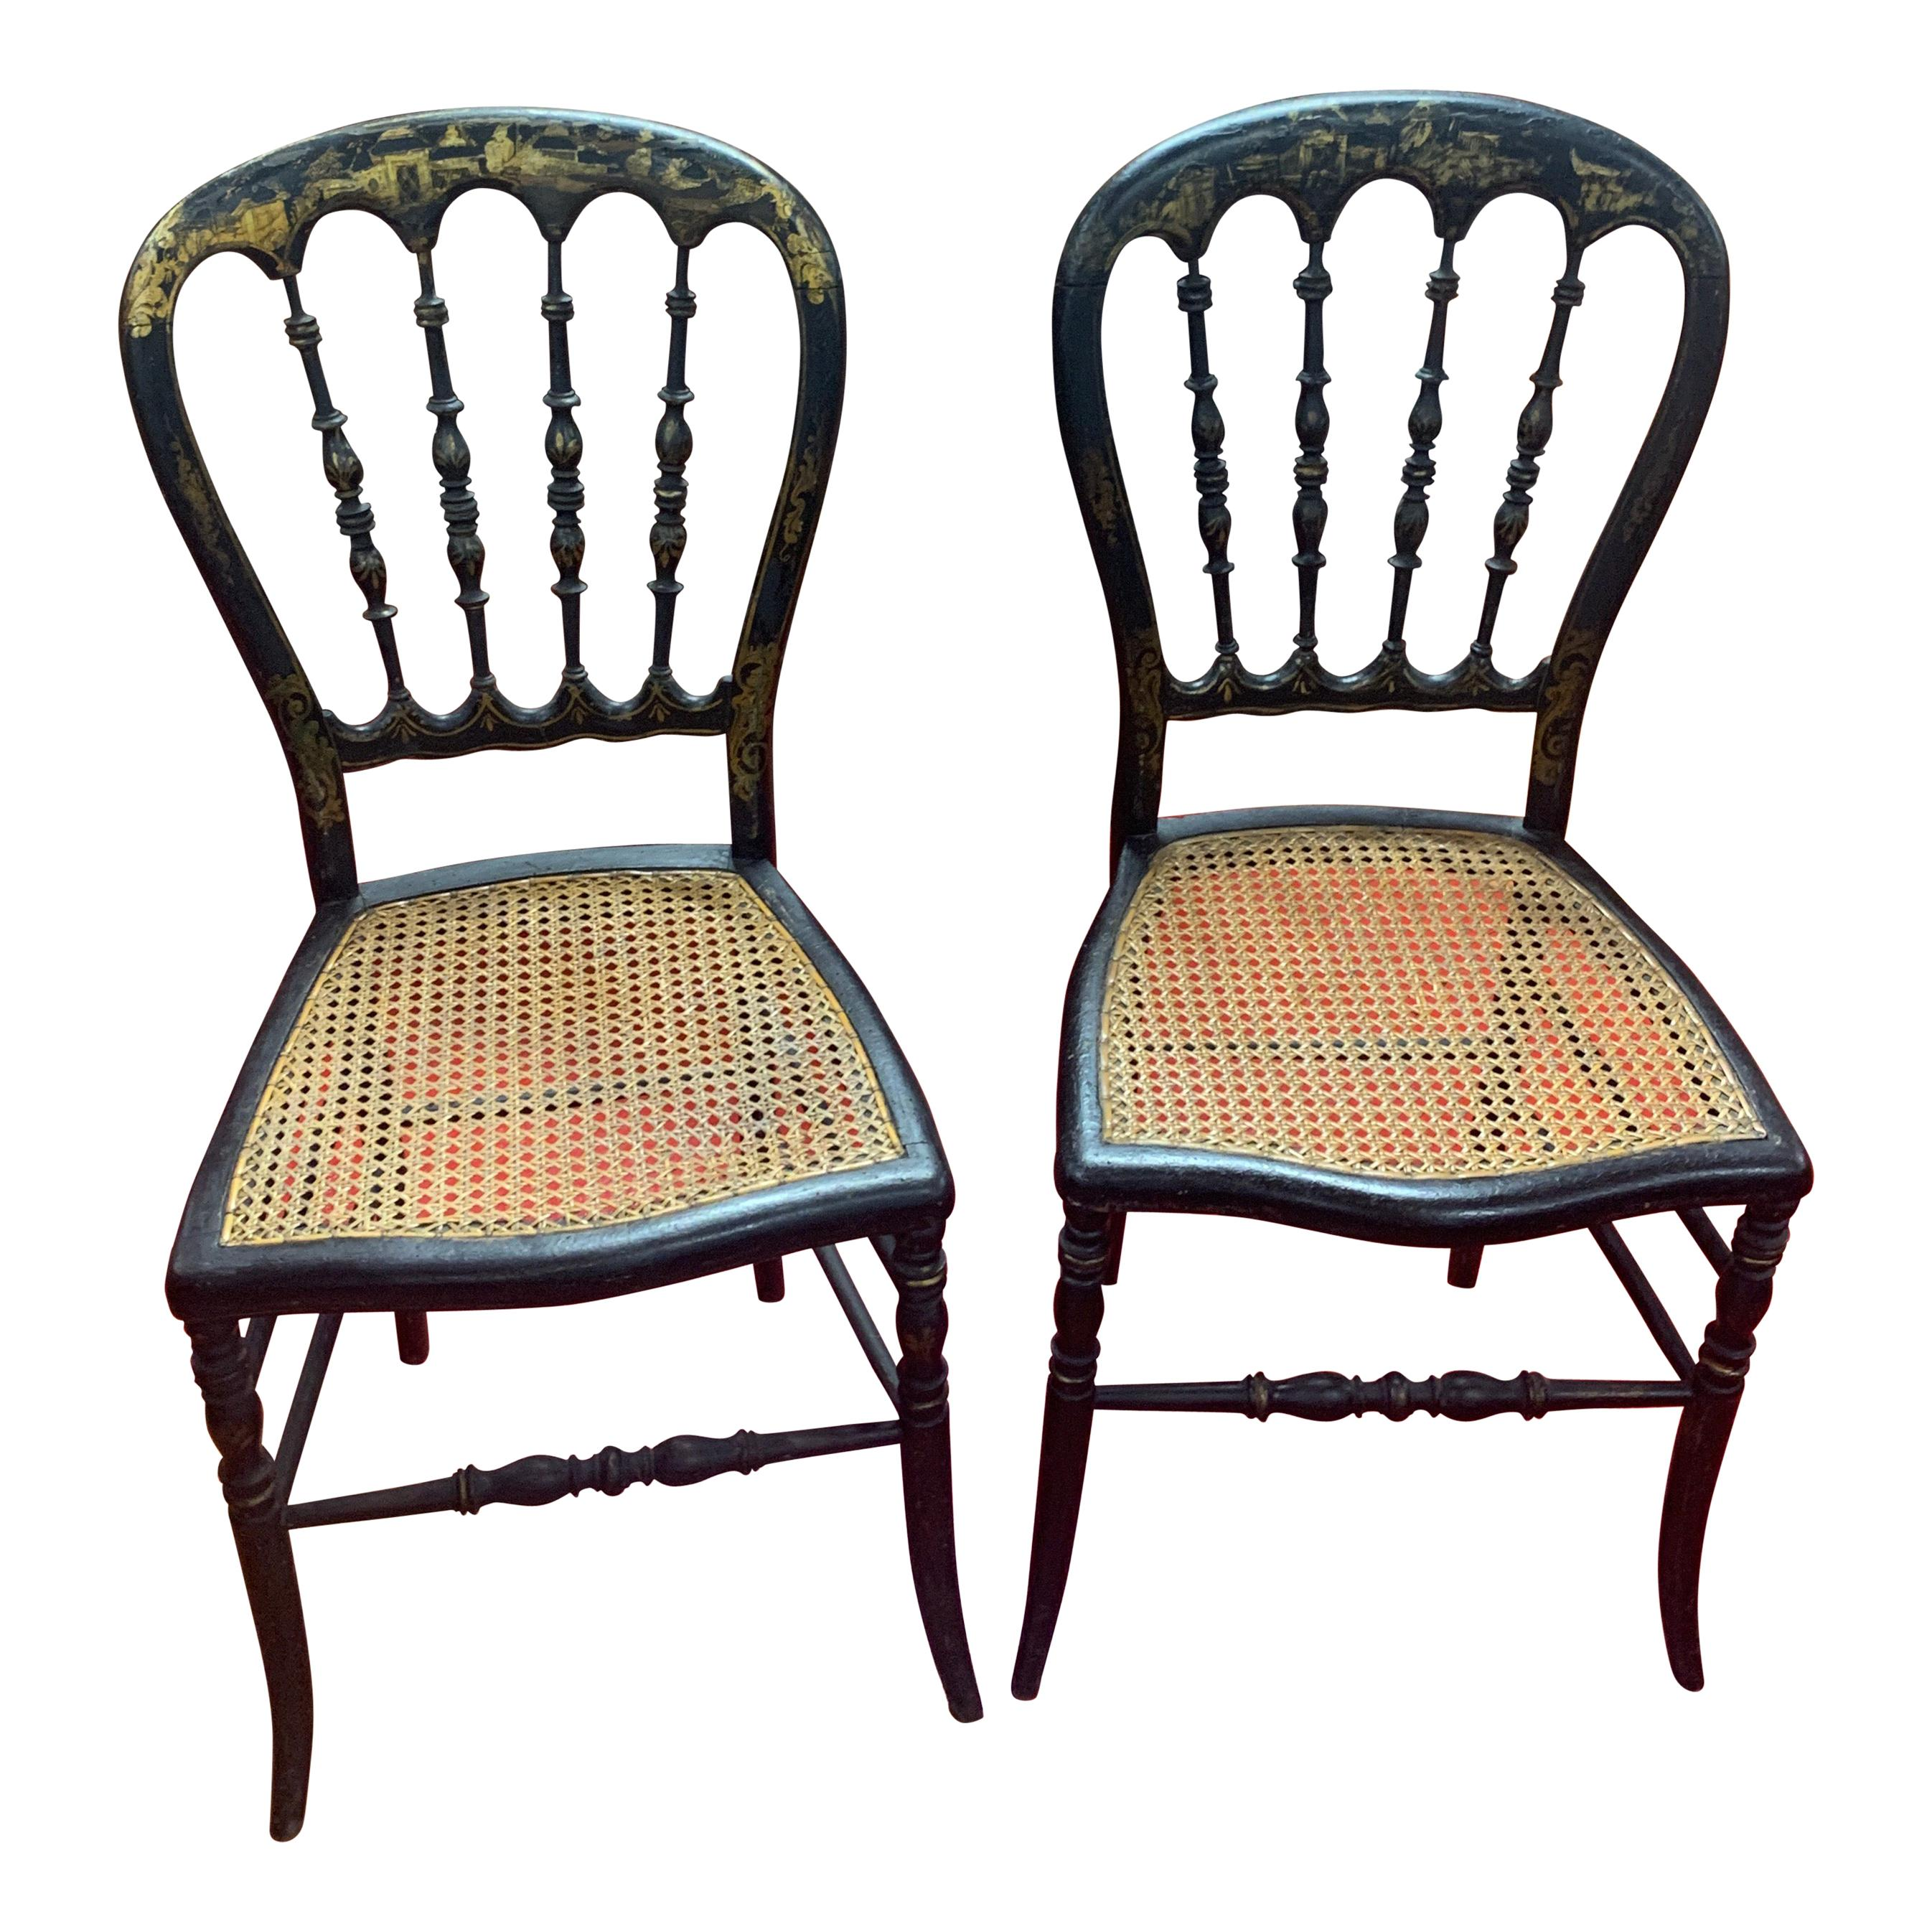 Pair of French 19th Century Napoleon III Cane Seat Chairs